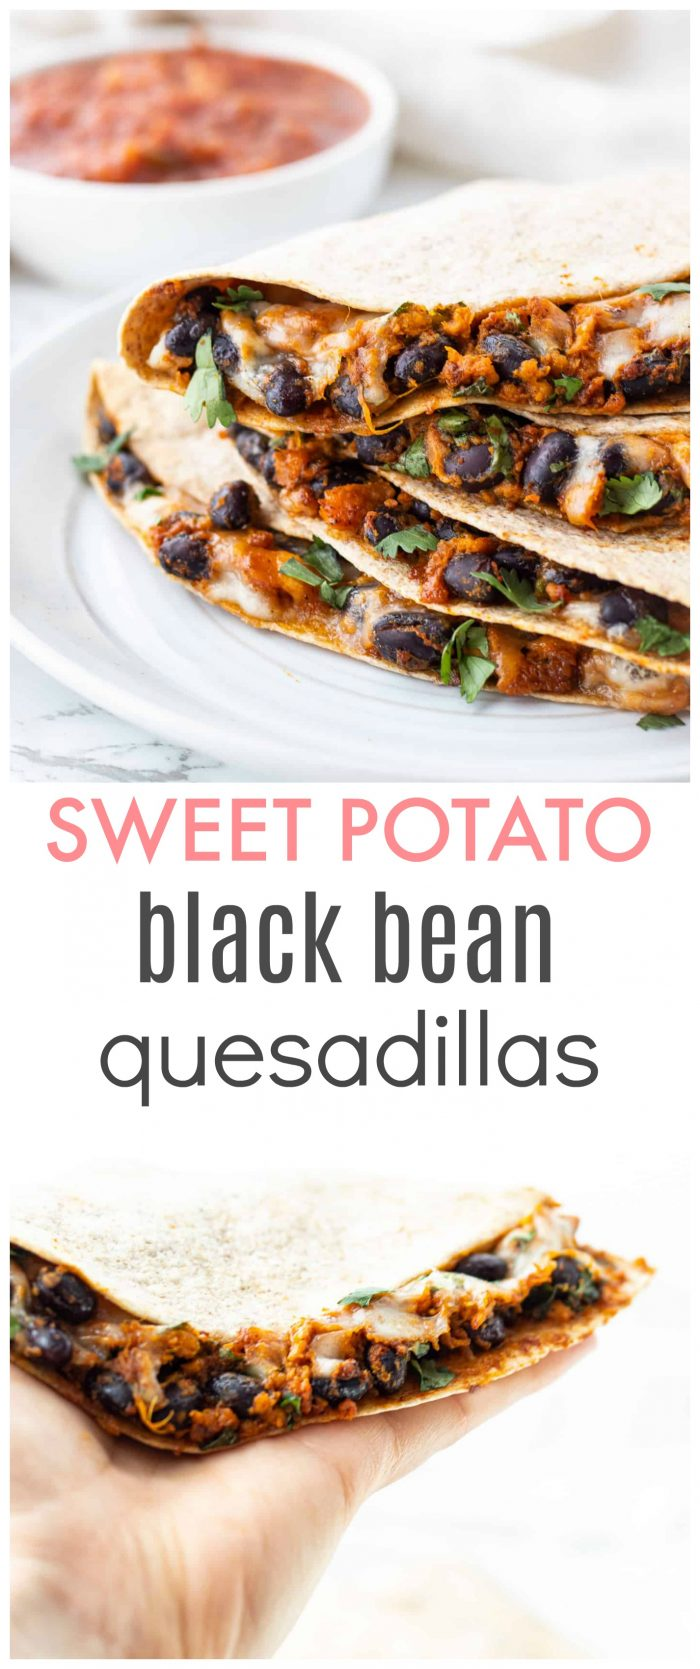 These vegetarian quesadillas are super easy to prepare and can be made in less than 30 minutes with only six simple ingredients!Made with sweet potato and black beans, it makes for the ultimate nutrient-packed meal! {vegetarian & can be madegluten-free}